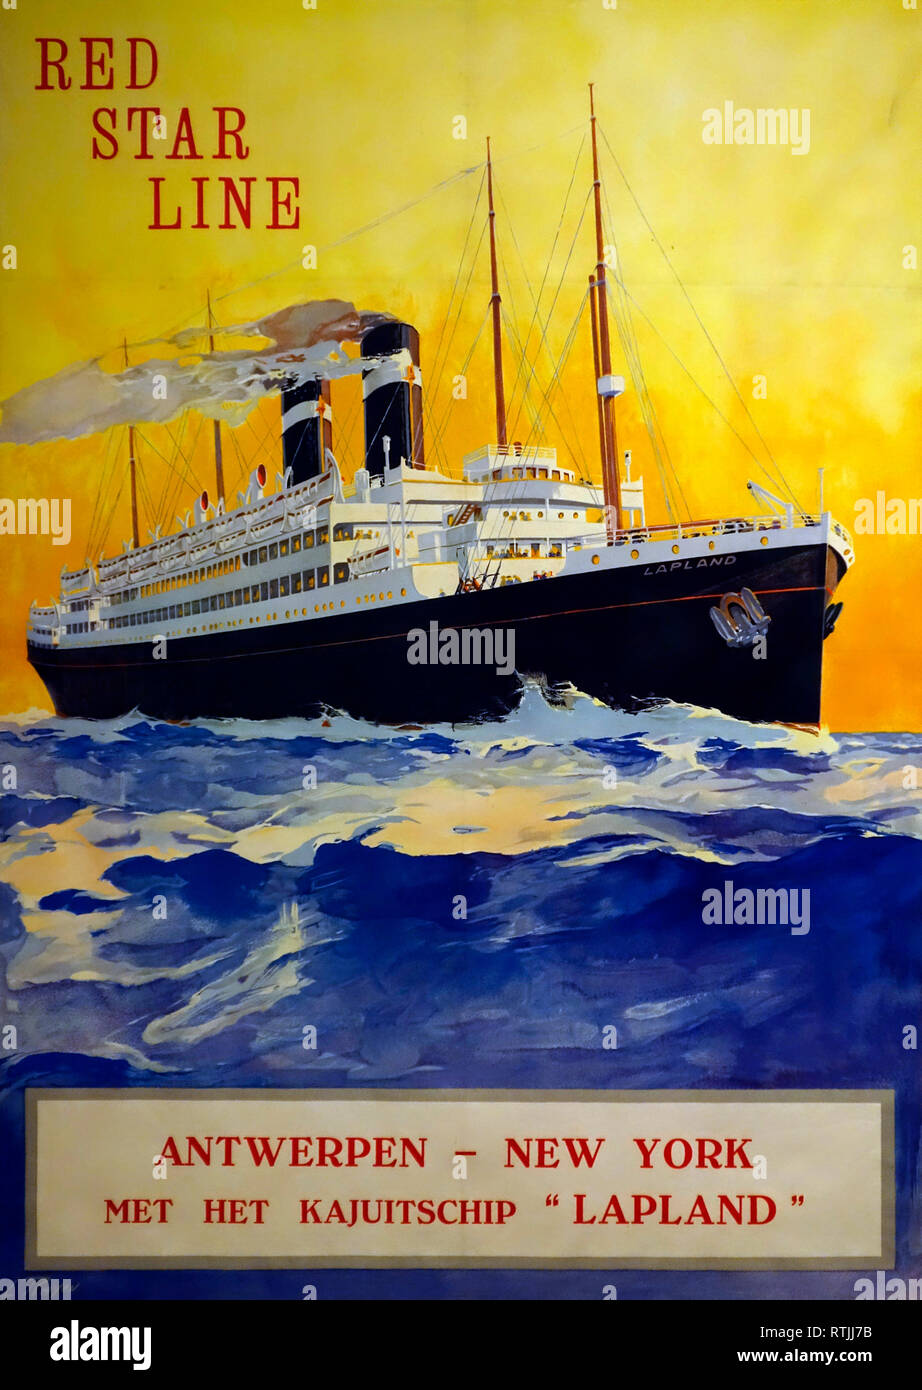 1920 vintage poster of the Red Star Line showing the SS Lapland passenger ship sailing under Belgian flag between Antwerp, Belgium and New York, USA Stock Photo